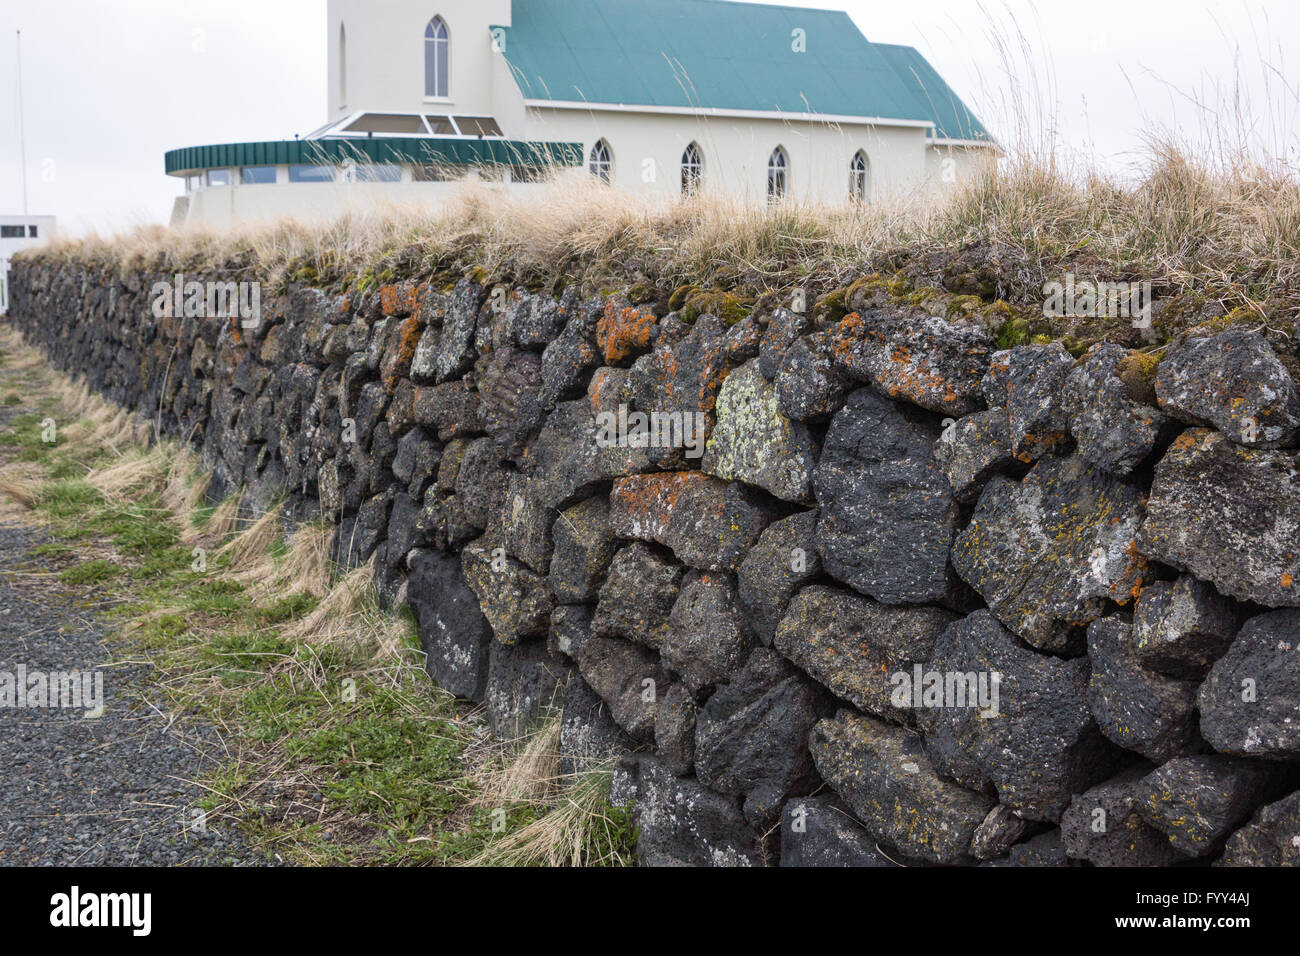 Rock wall with church behind, Iceland - Stock Image